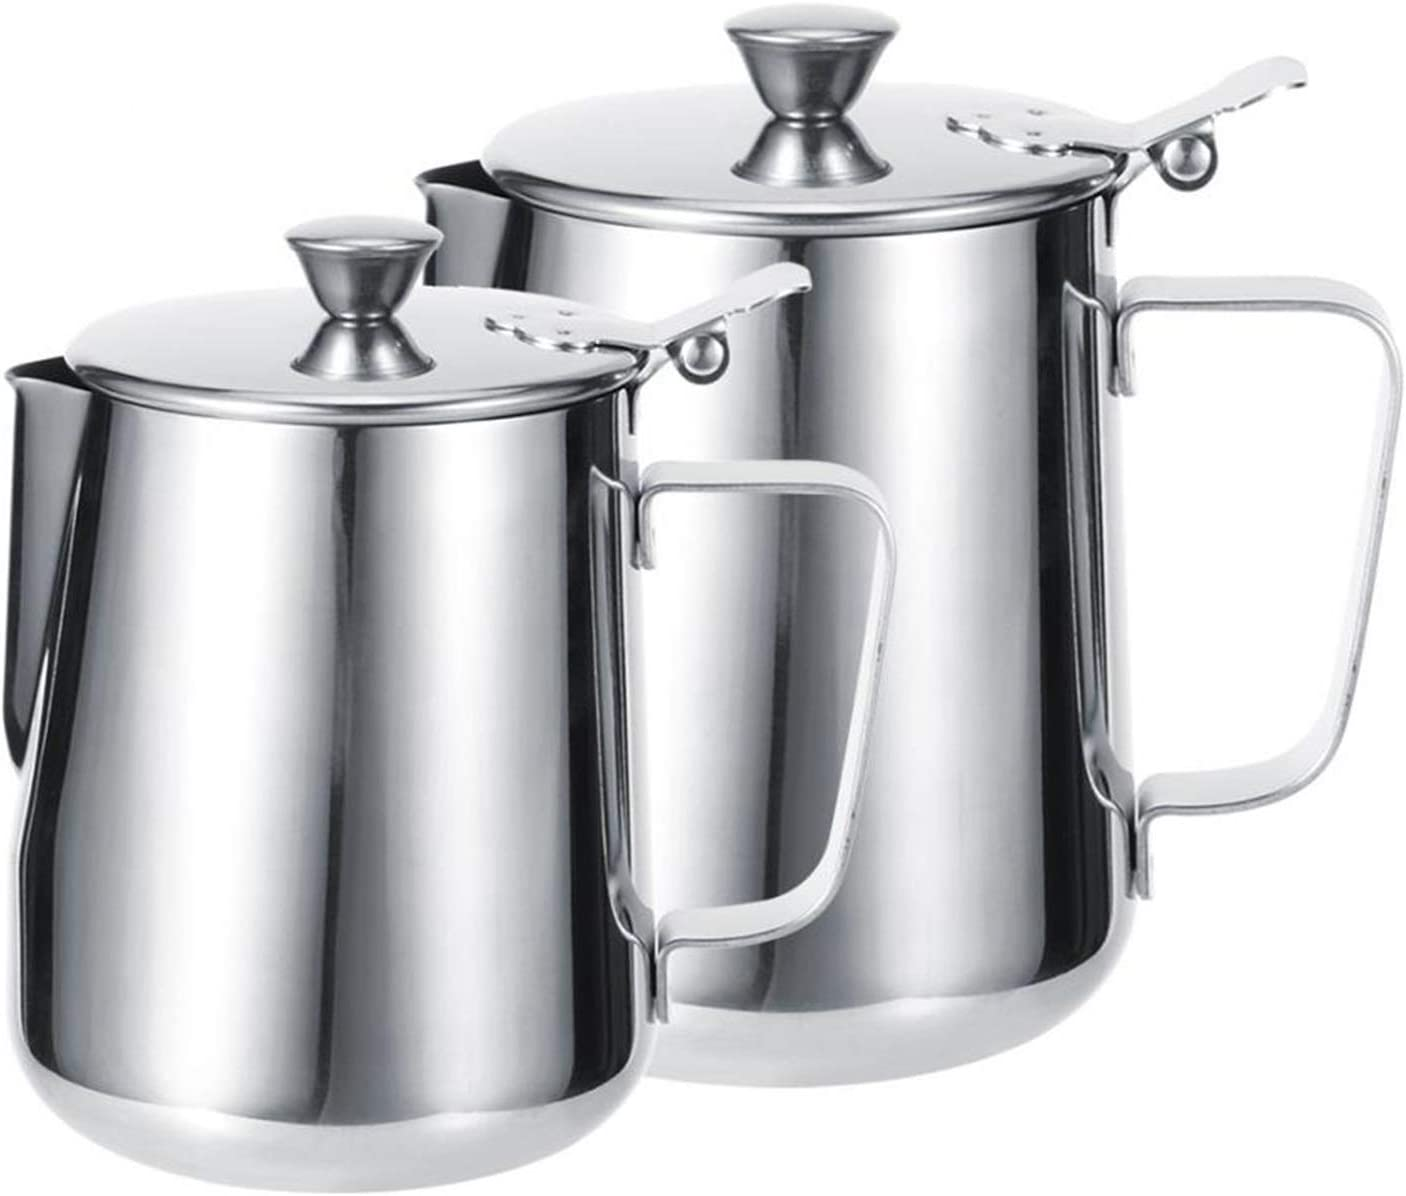 CHENZHEN Stainless Steel Thicken Milk Frothing Cup Jug Coffee Pi